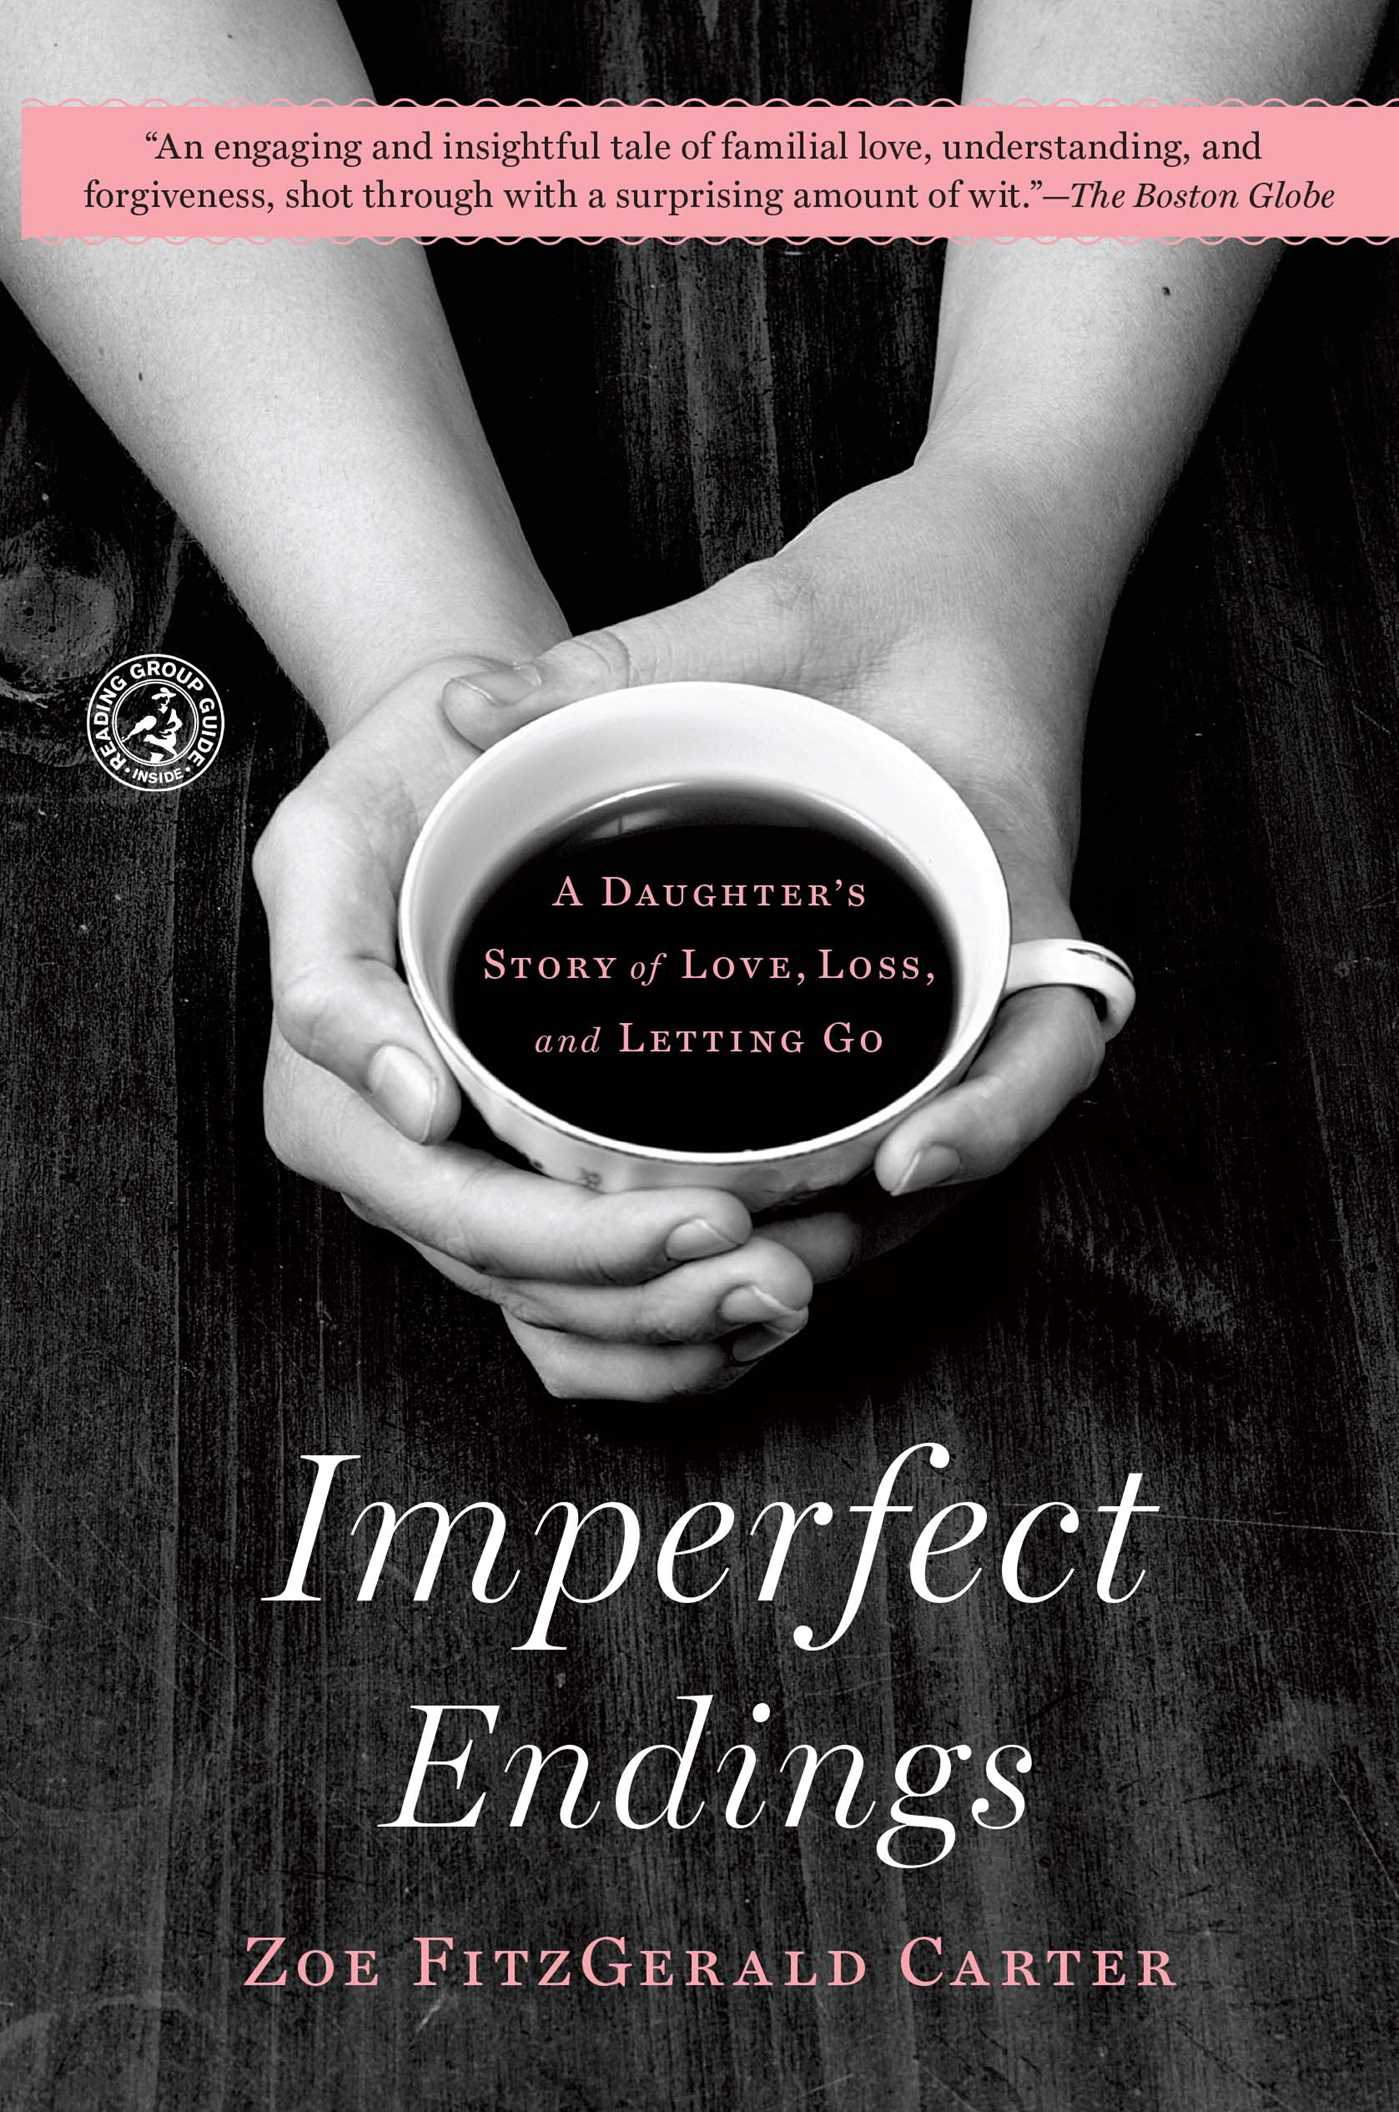 Imperfect endings 9781439148310 hr